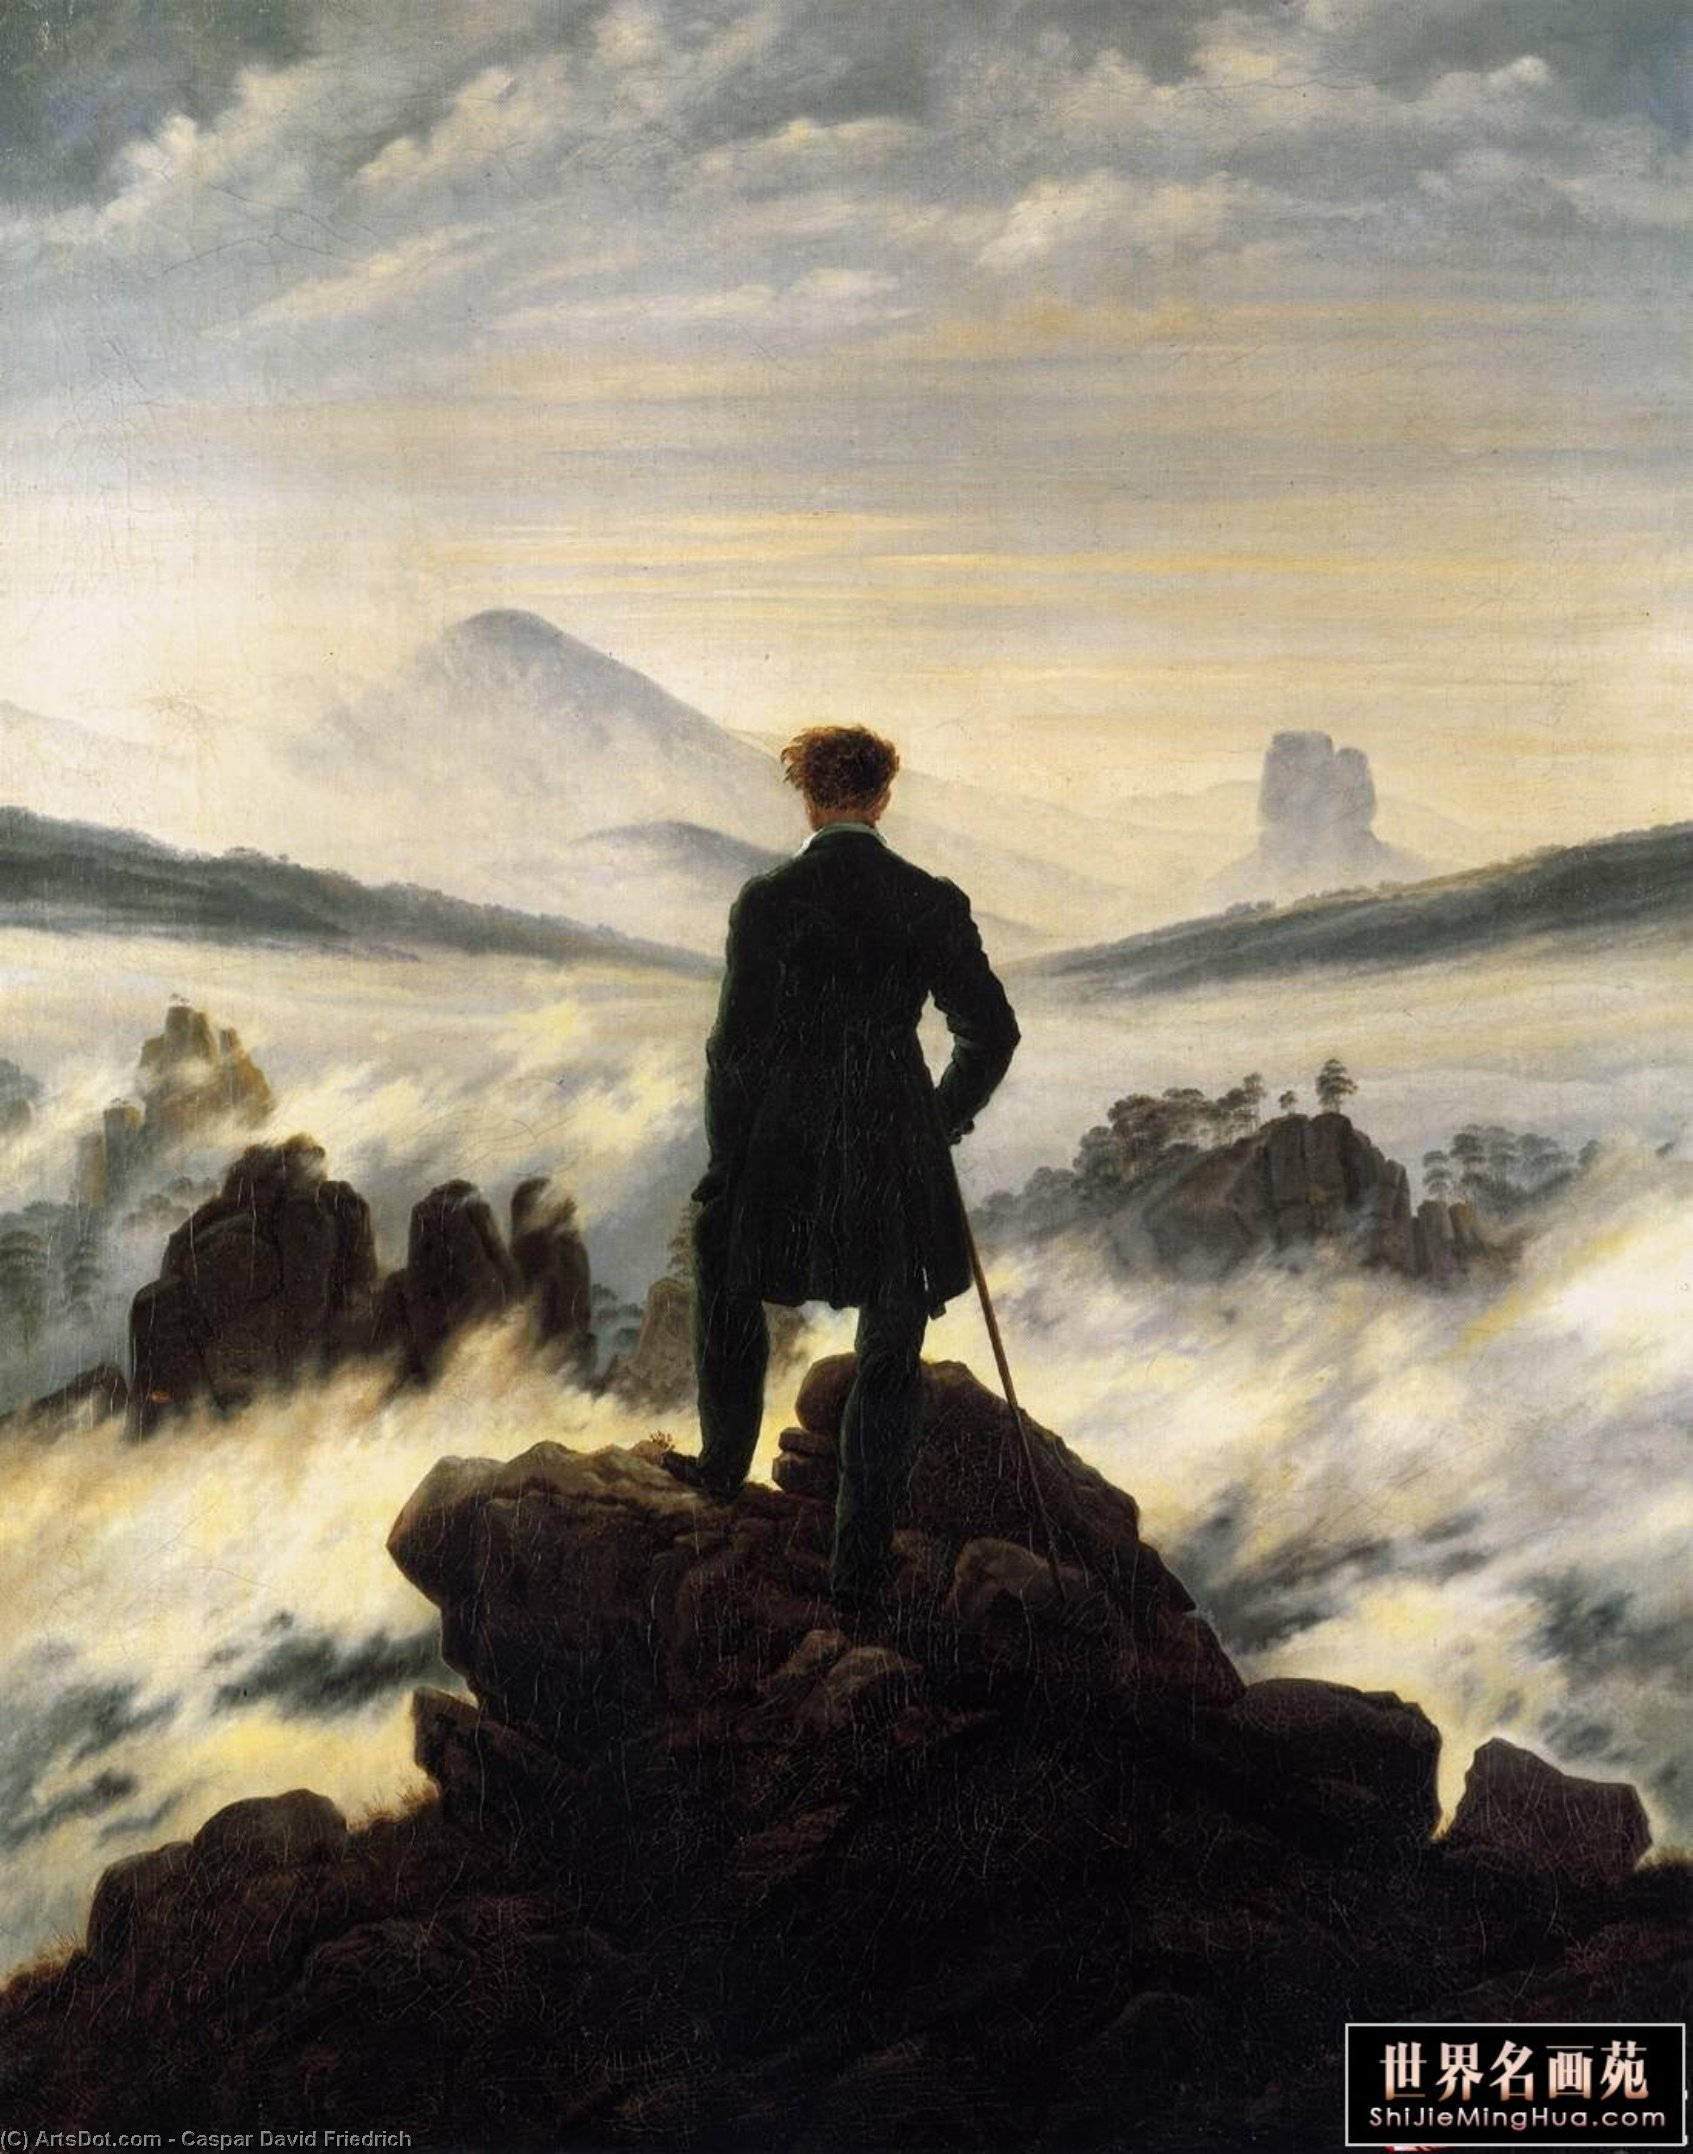 Wikioo.org - The Encyclopedia of Fine Arts - Painting, Artwork by Caspar David Friedrich - Wanderer above the Mists